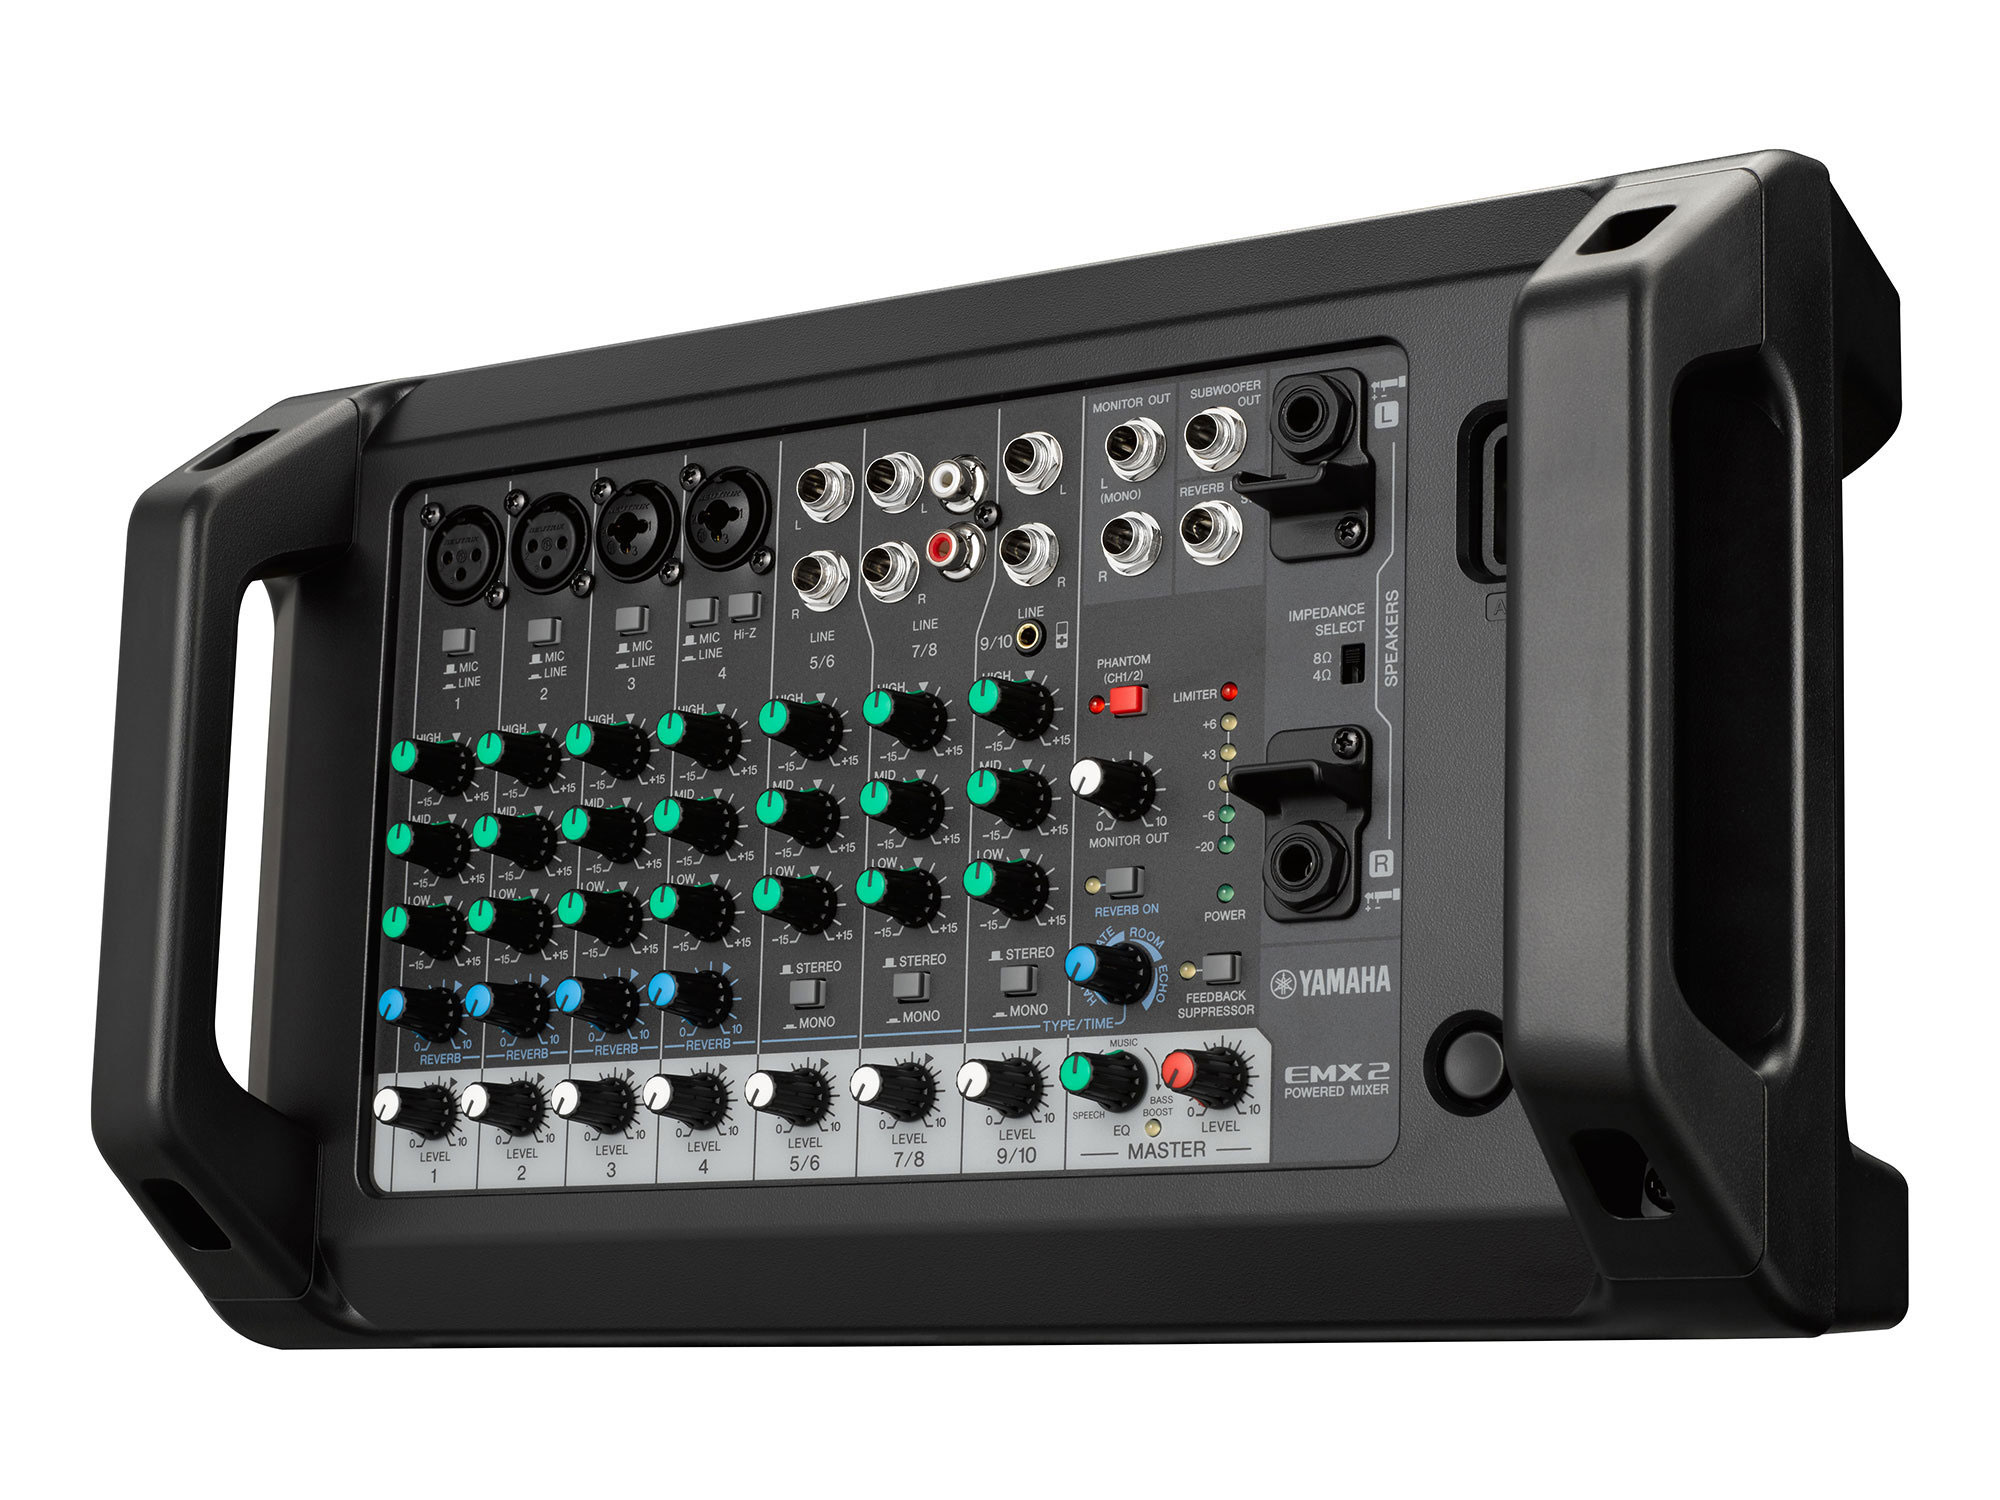 yamaha emx2 powered pa mixer 250w per channel at 4ohms